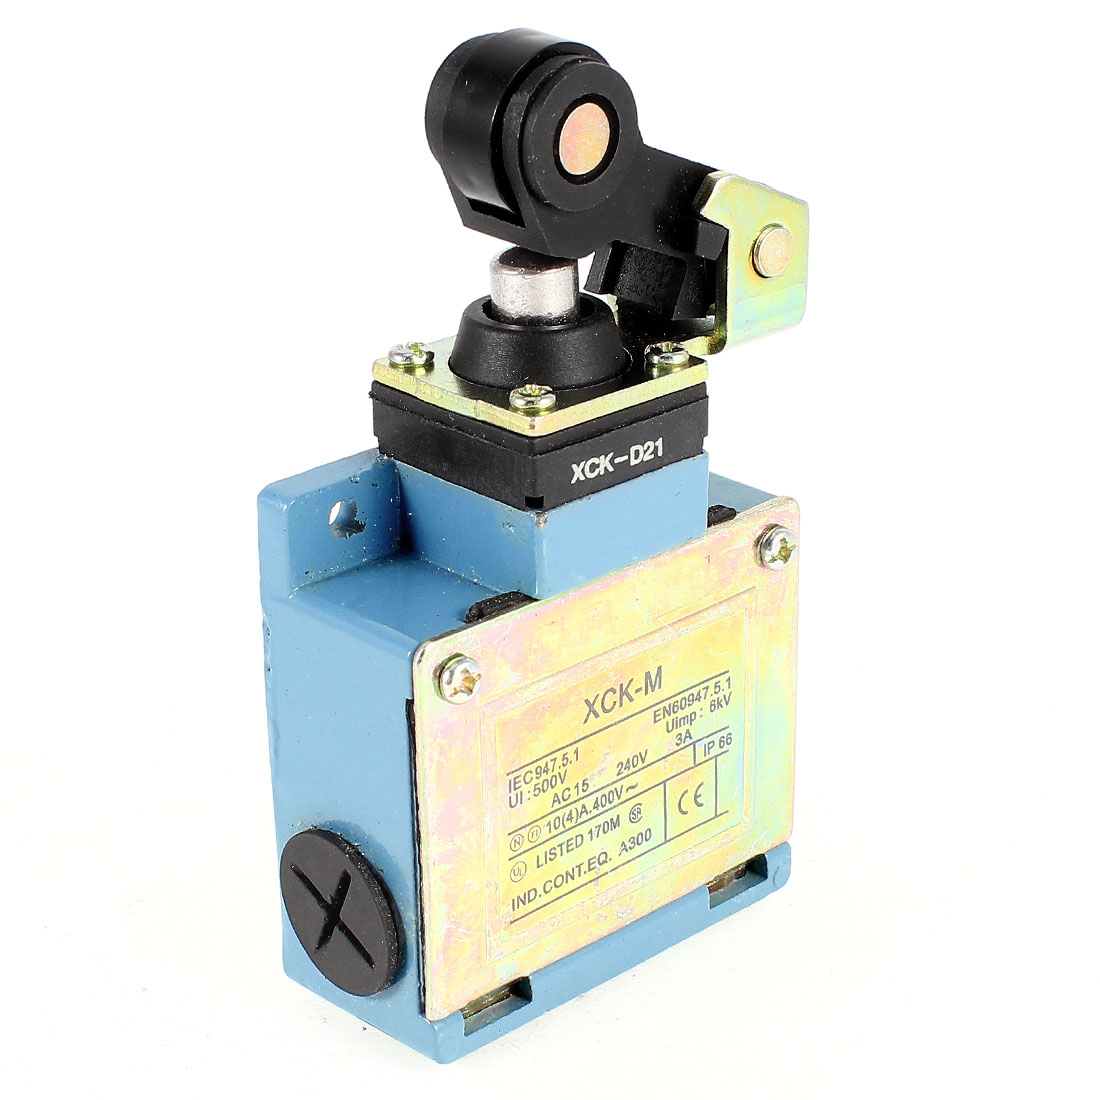 XCK-M/D21 AC15 240V 3A Roller Lever Actuator Limit Switch